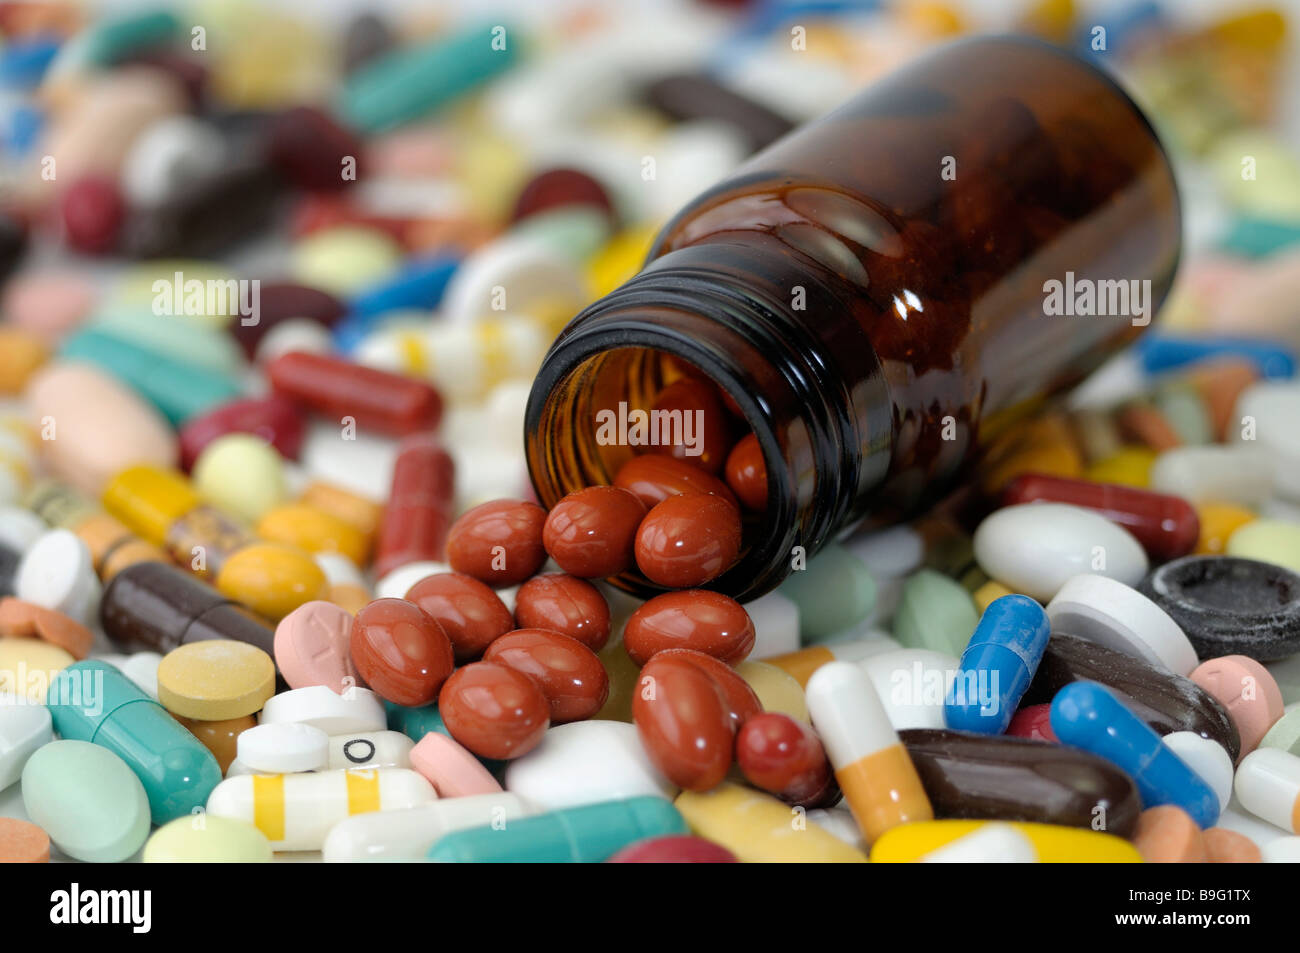 Colorful tablets with a small bottle studio picture - Stock Image